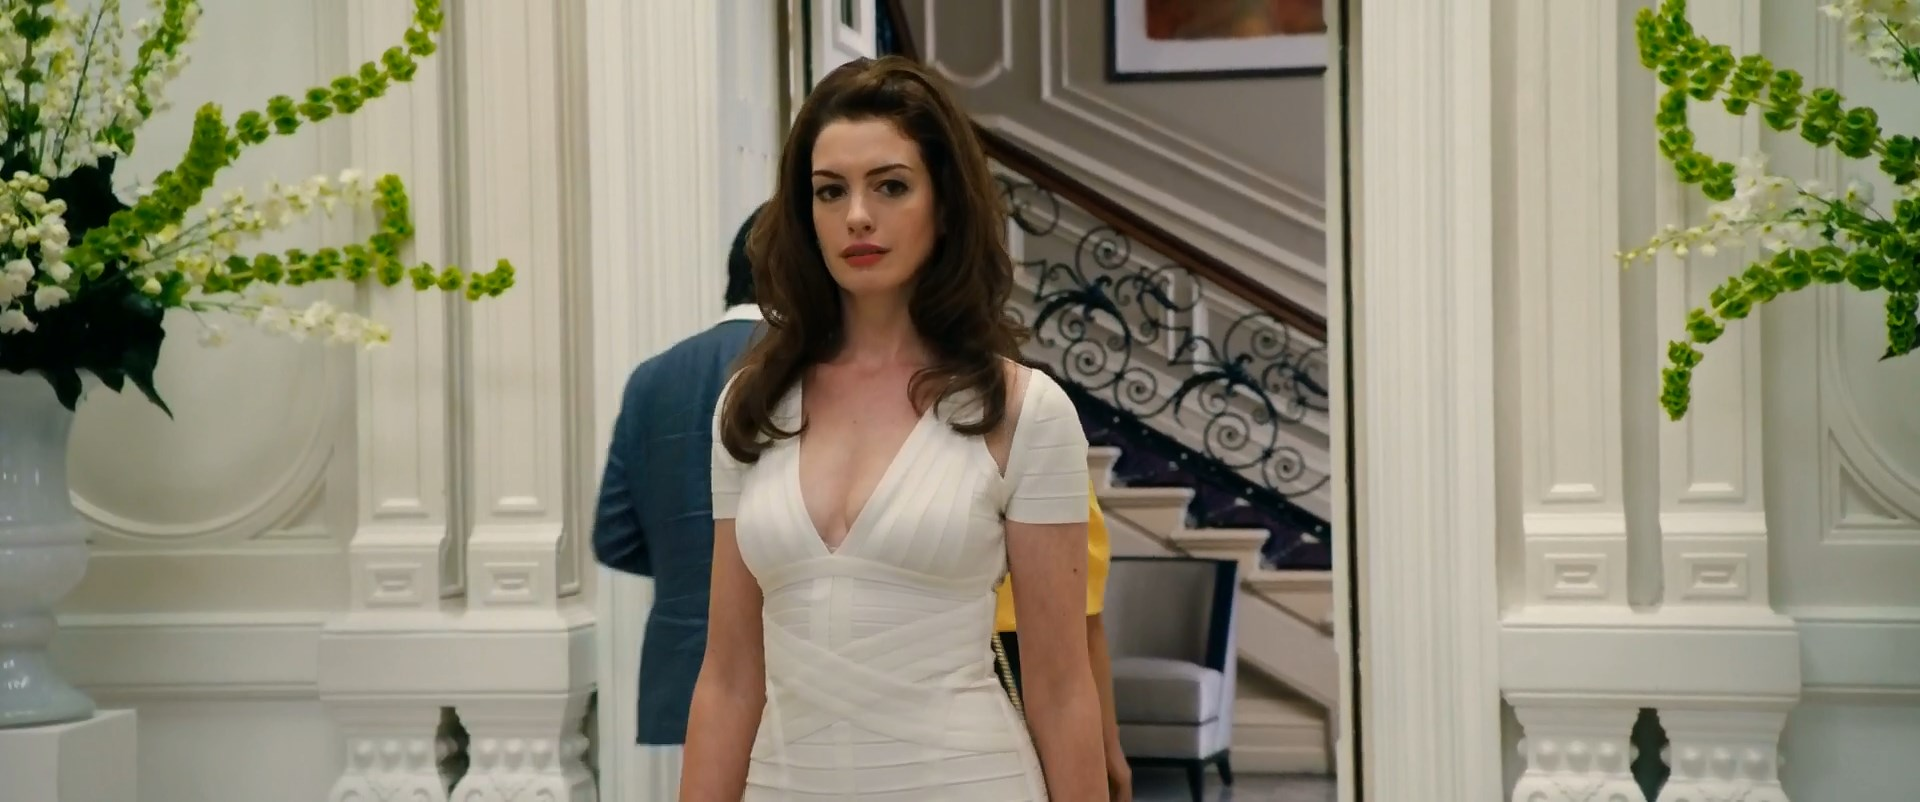 Anne Hathaway - The Hustle (2019) HD 1080p